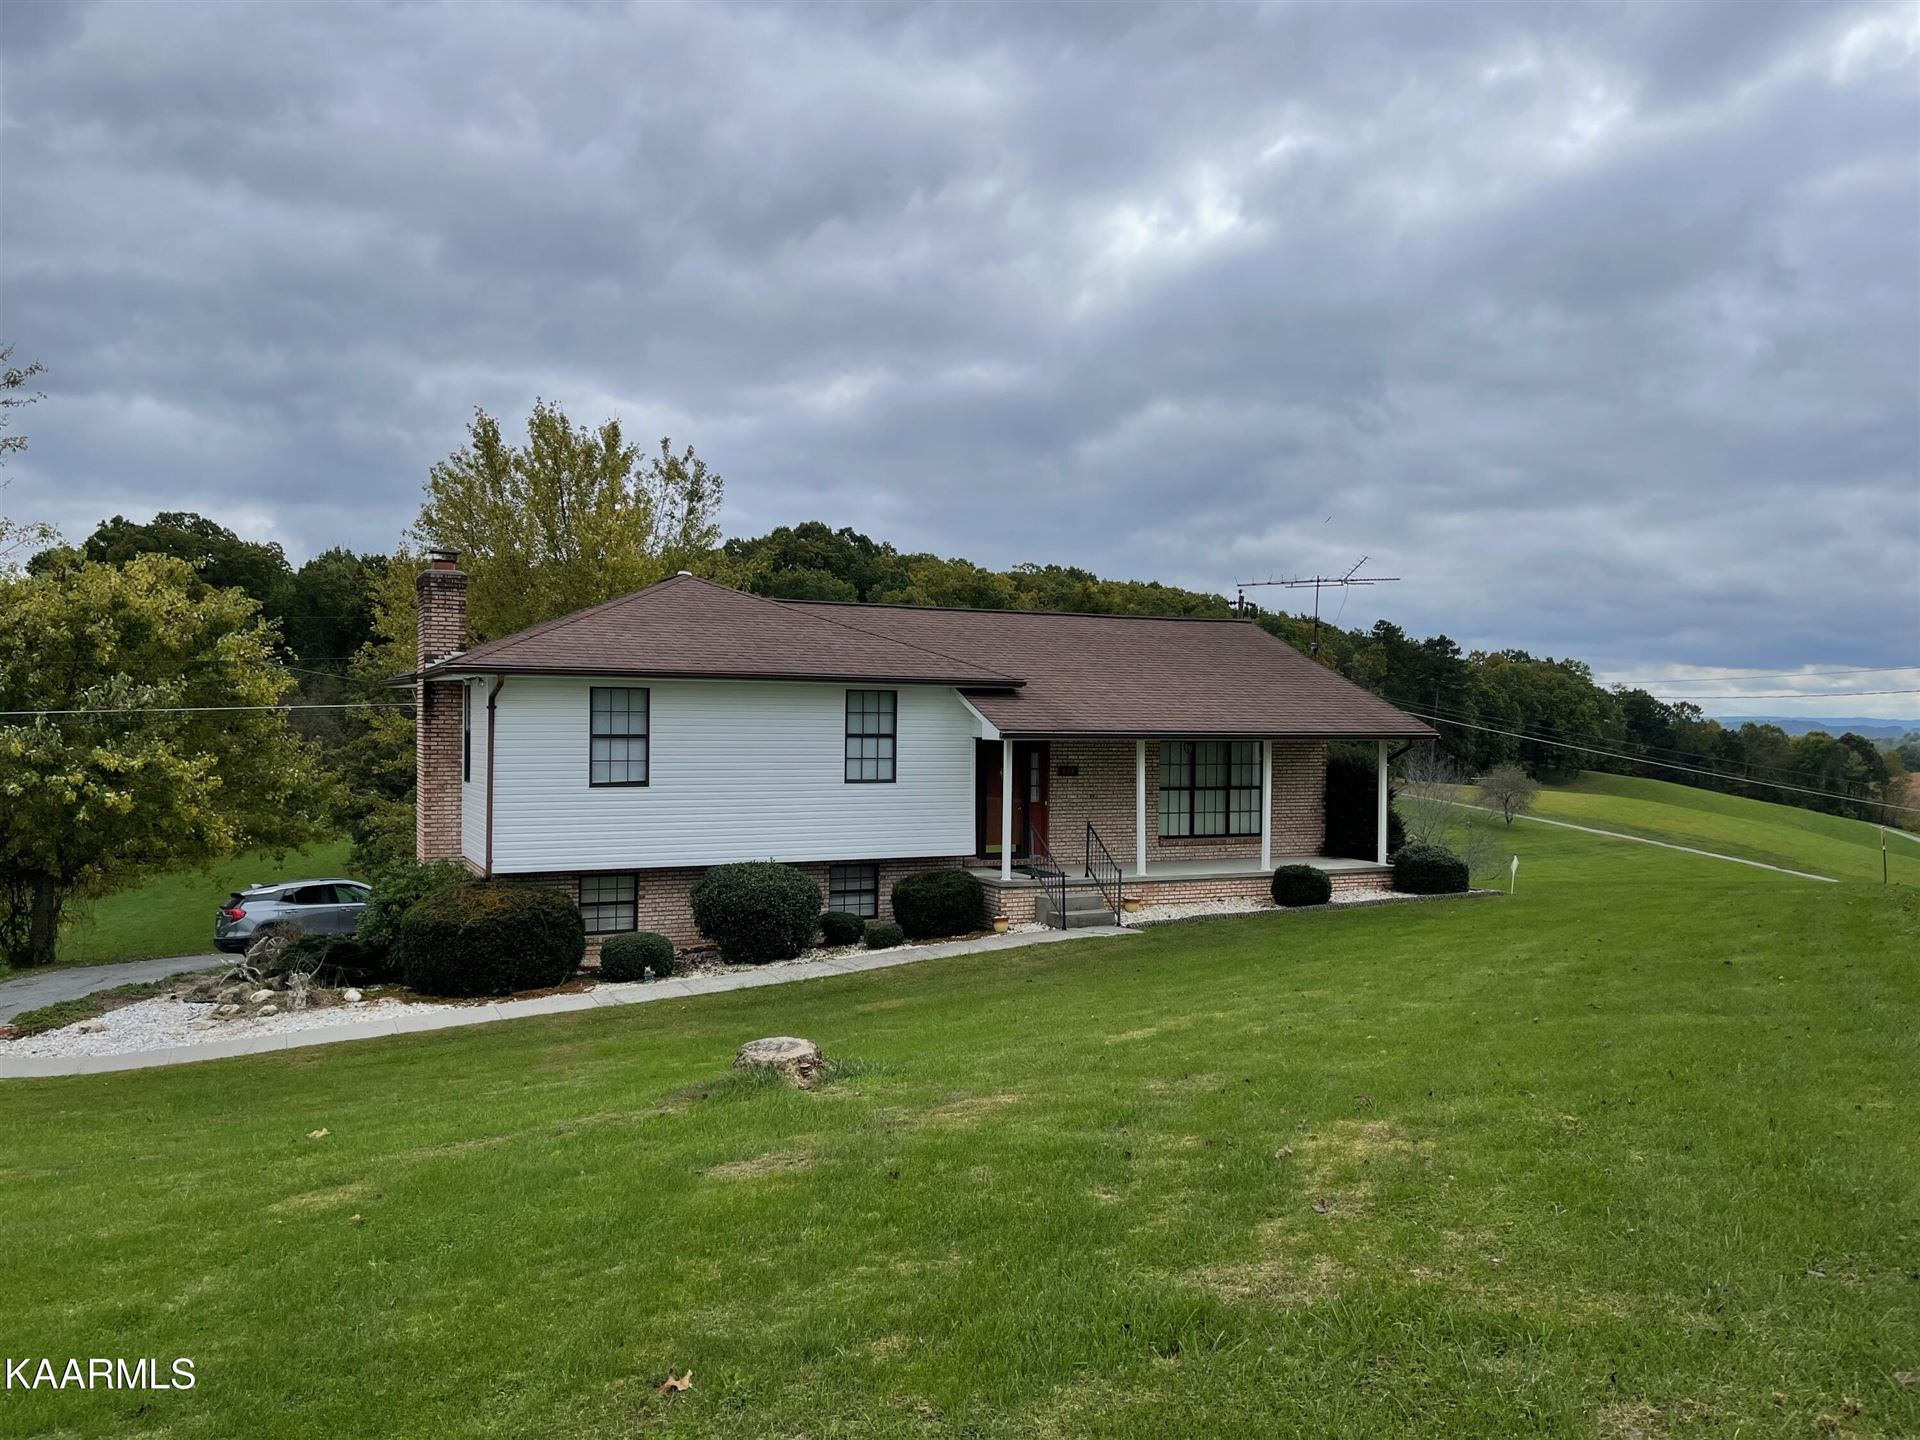 Photo of 818 Cave Springs Rd, Tazewell, TN 37879 (MLS # 1171814)